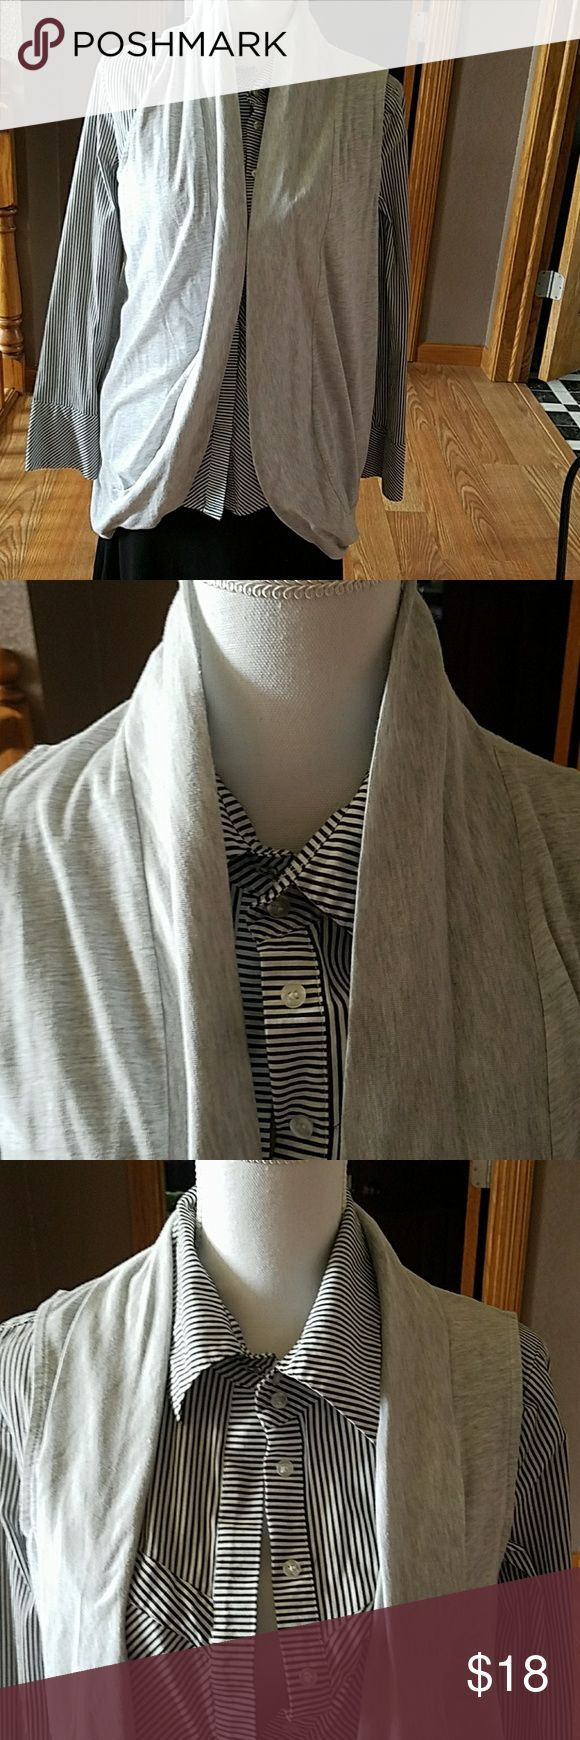 """Ruff Hewn sleeveless cardigan sz L This gray sleeveless cardigan is in excellent condition, great length of 29"""". Neckline can be worn high or folded, great staple for your closet Ruff Hewn Tops"""